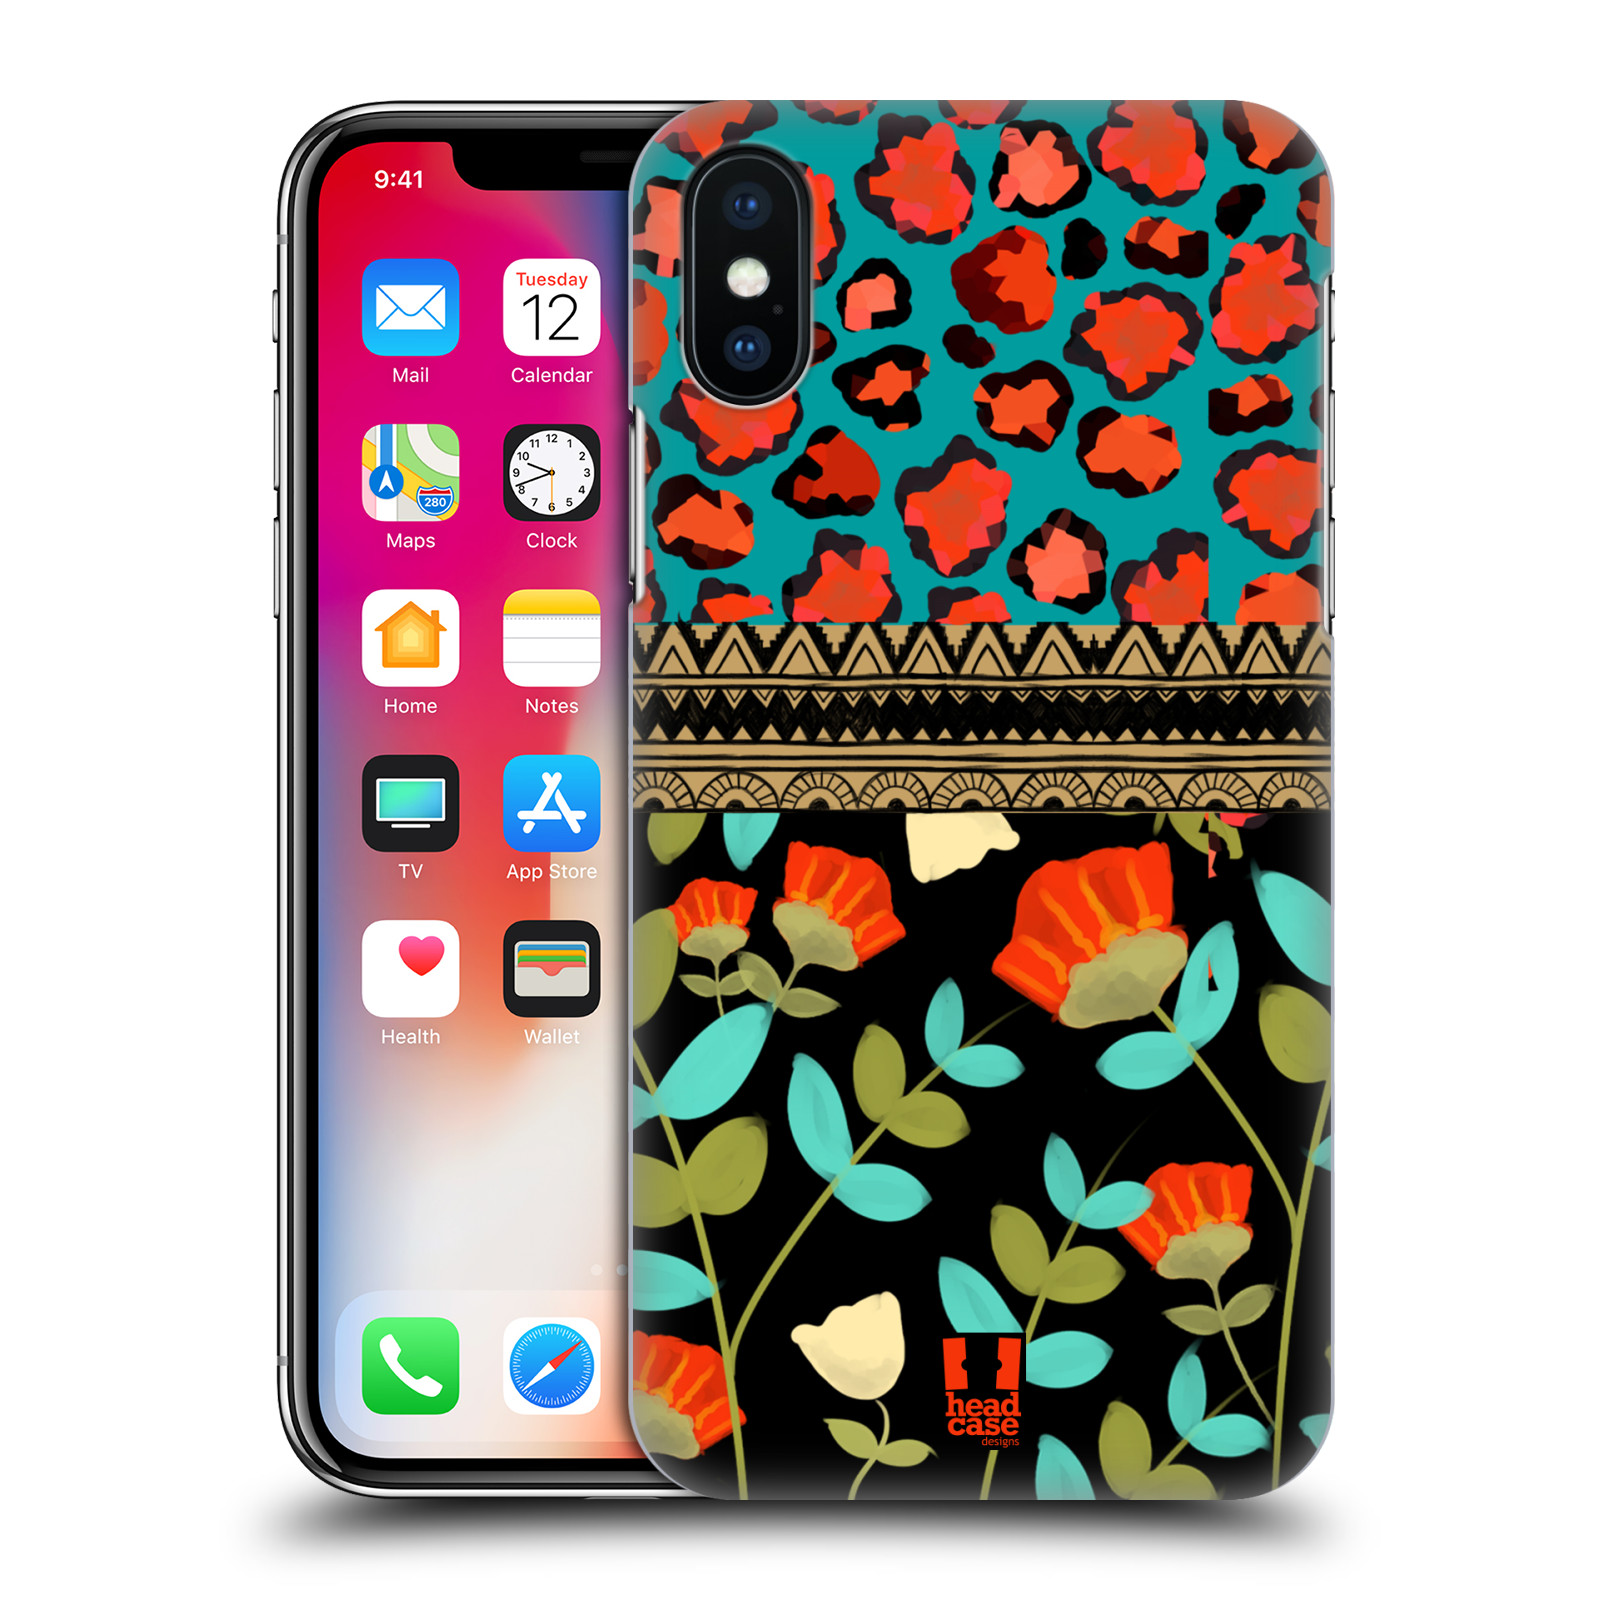 HEAD-CASE-DESIGNS-PATTERN-MIX-HARD-BACK-CASE-FOR-APPLE-iPHONE-X